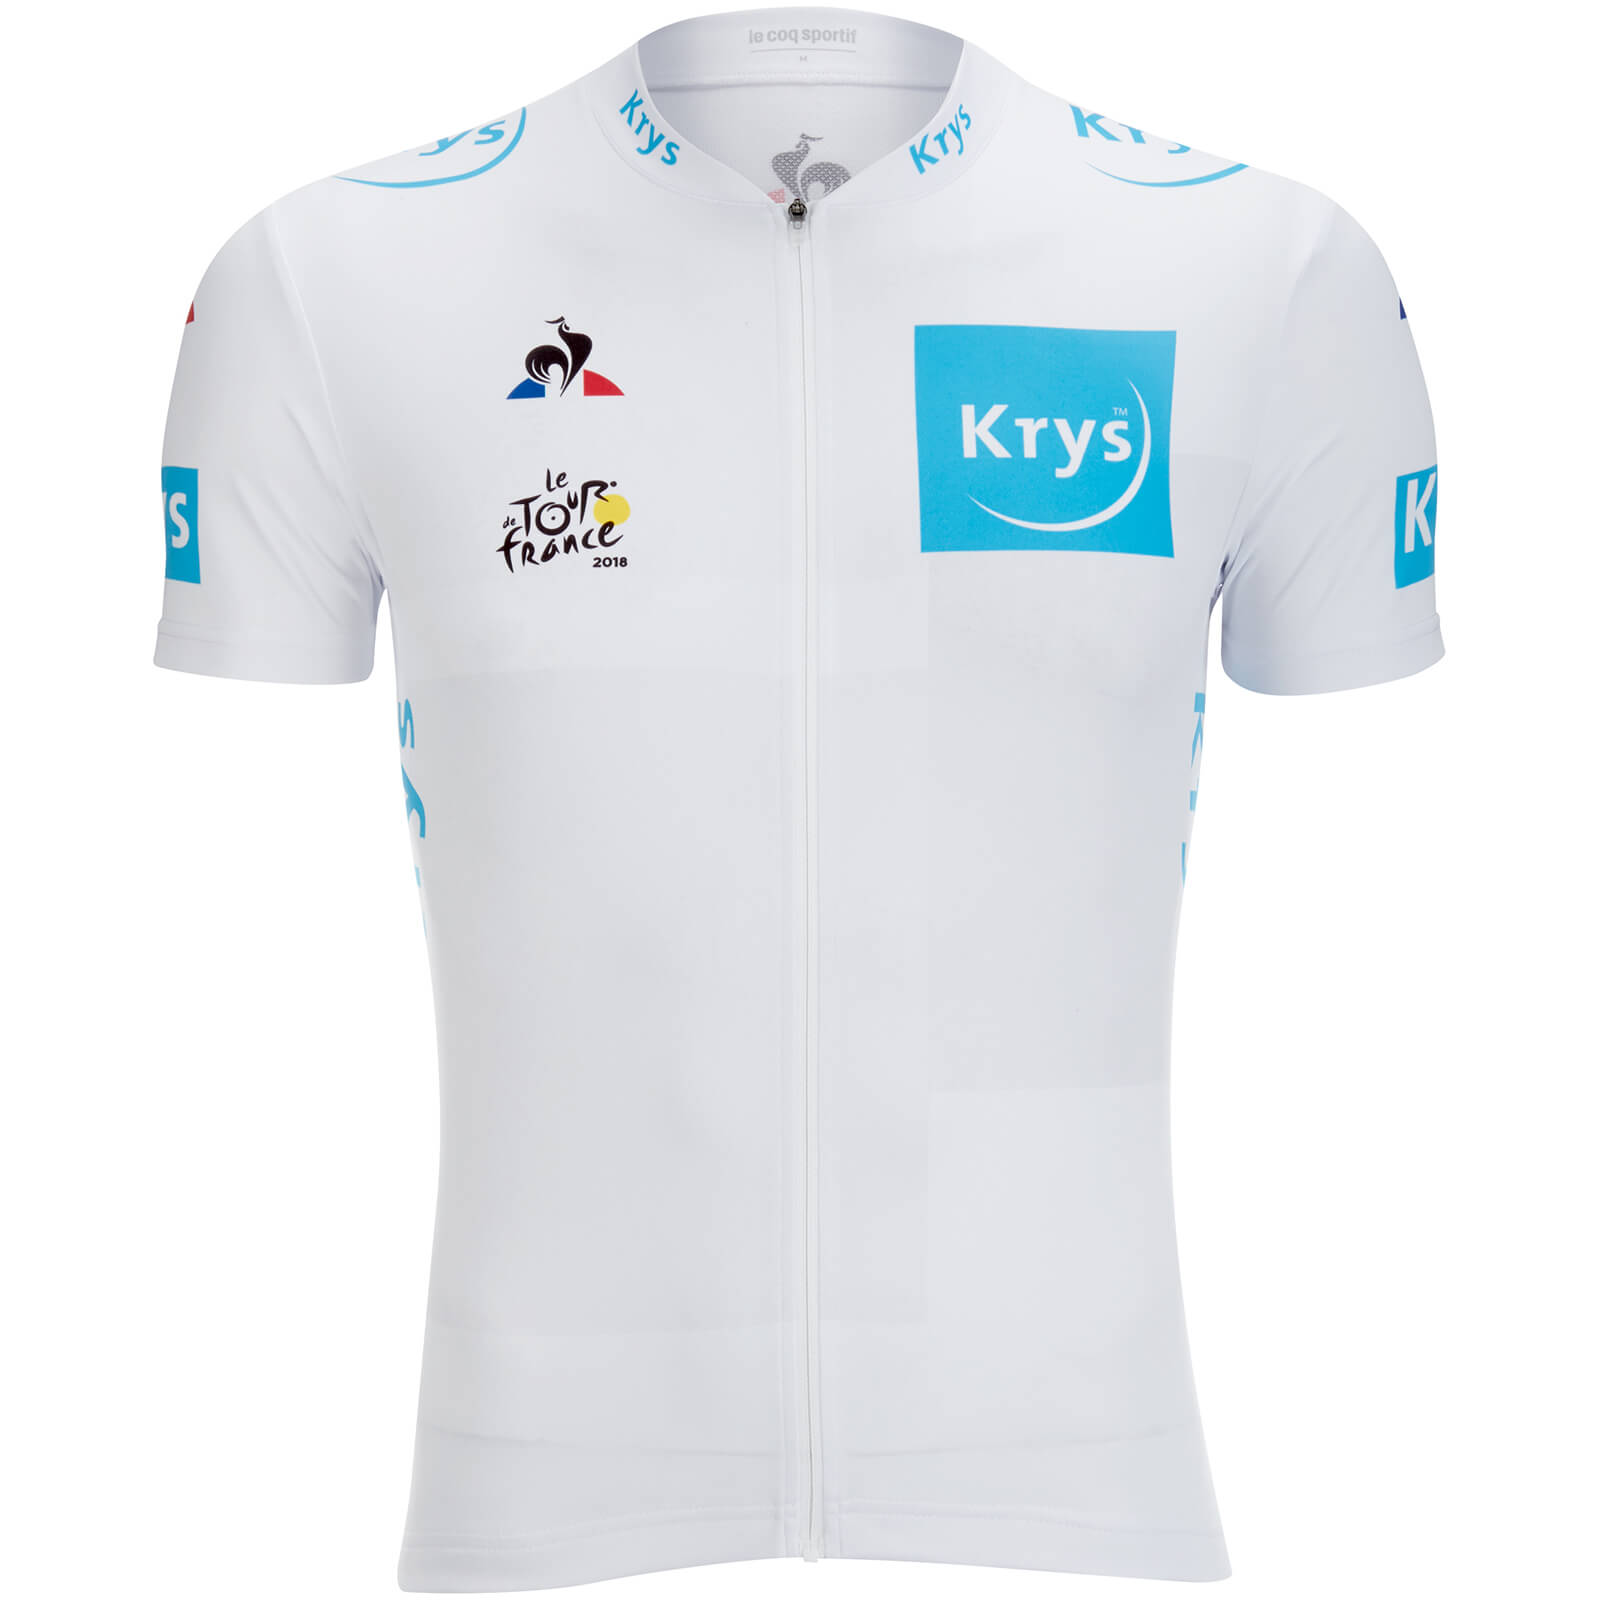 new styles 413bd cc5b8 Le Coq Sportif Tour de France 2018 Young Riders Classification Official  Jersey - White